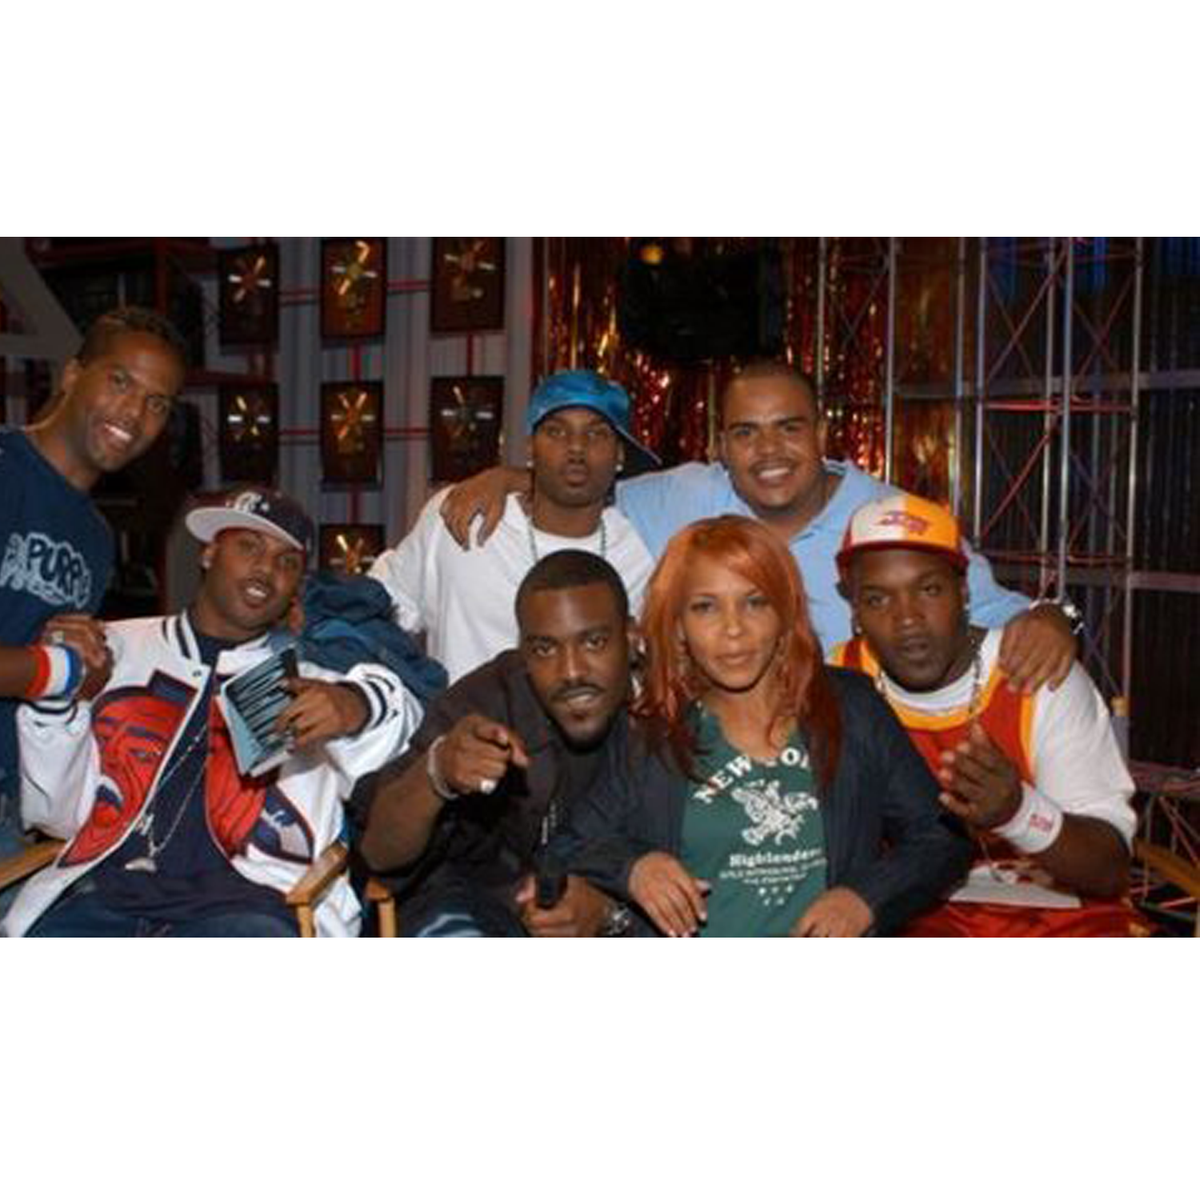 . #106andMemories w/ @AJCalloway , @missfree & @djenuff love to @106andpark for giving so much support #106FinalAct http://t.co/HxfLcv2DWN